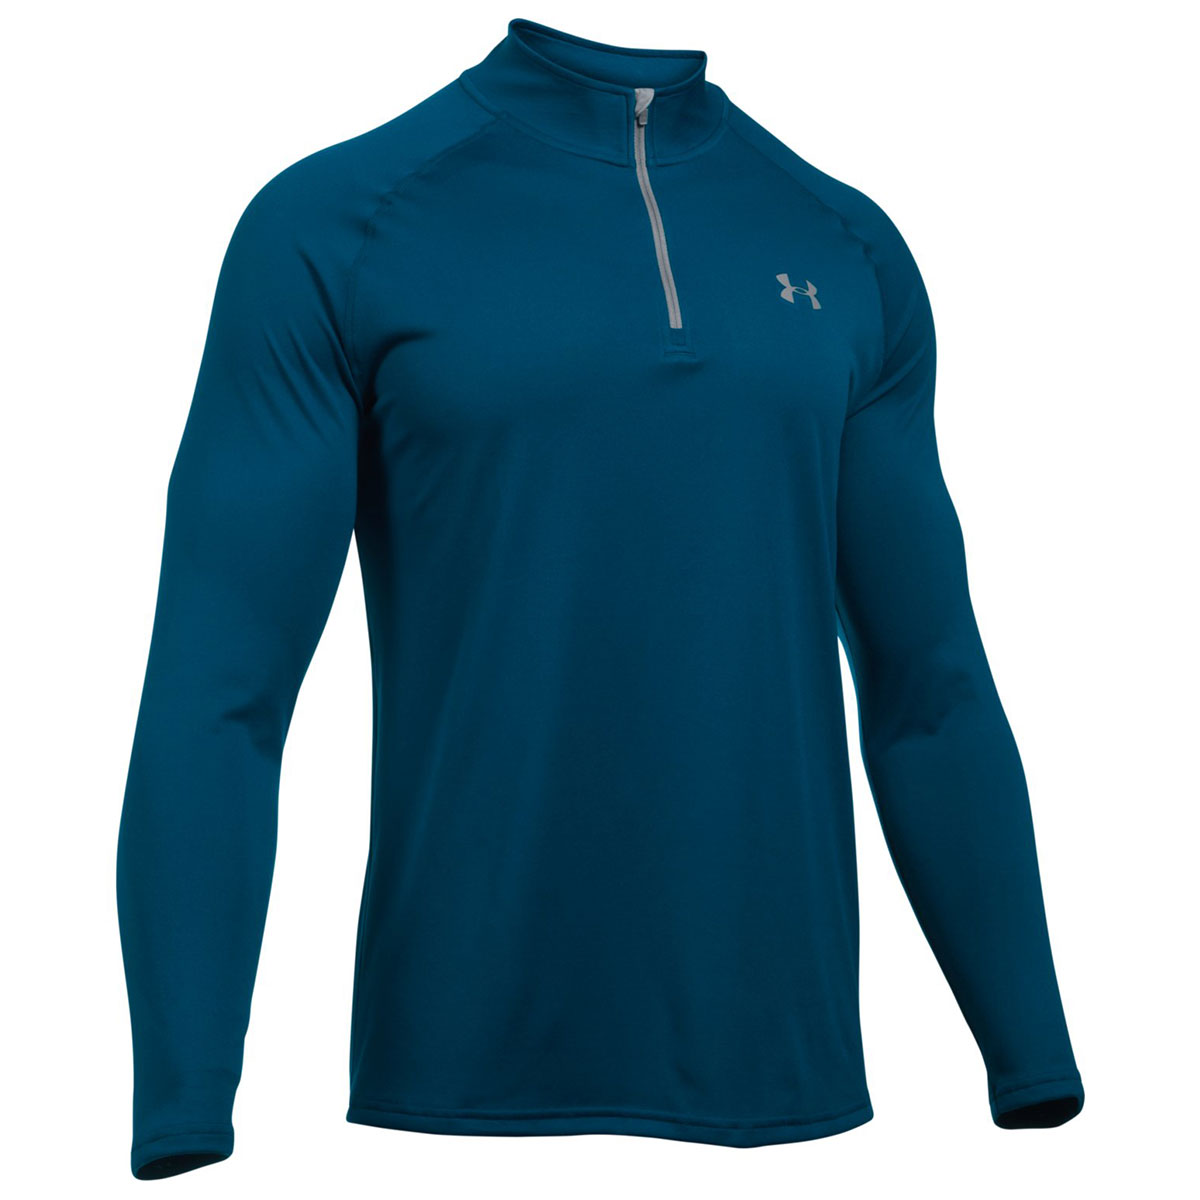 Under-Armour-Mens-UA-Tech-1-4-Zip-Long-Sleeve-Top-Workout-Layer-27-OFF-RRP thumbnail 32